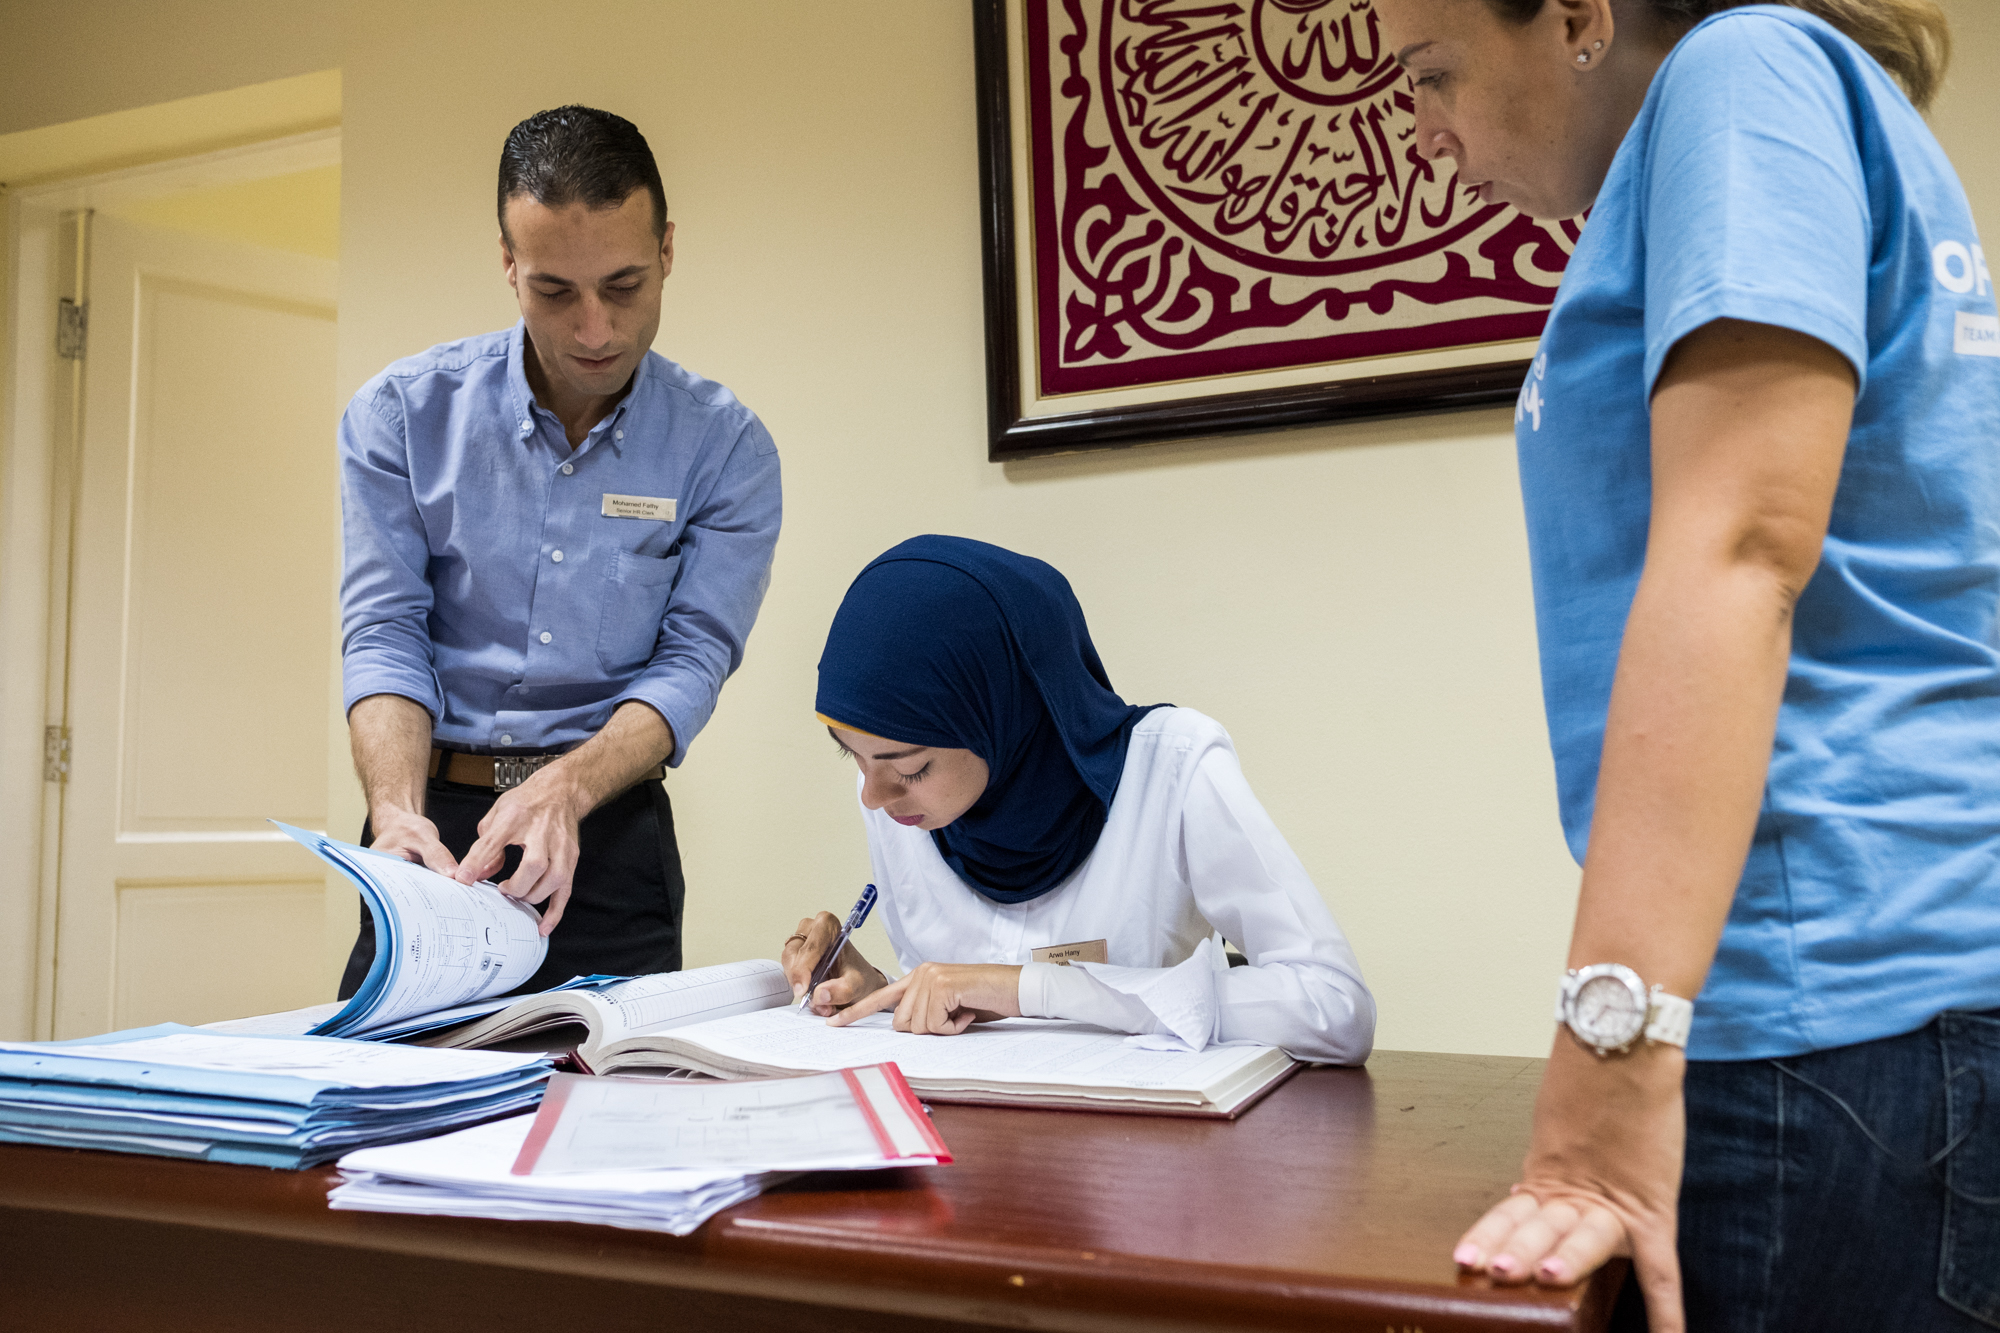 Arwa (center), a trainee in the Human Resources Department at Hilton Sharm Waterfalls Resort in Sharm El Sheikh, Egypt, prepares employee paperwork with the help of her boss (left). Ingy Helal (right), the Hilton Team Member who introduced the program, looks on.